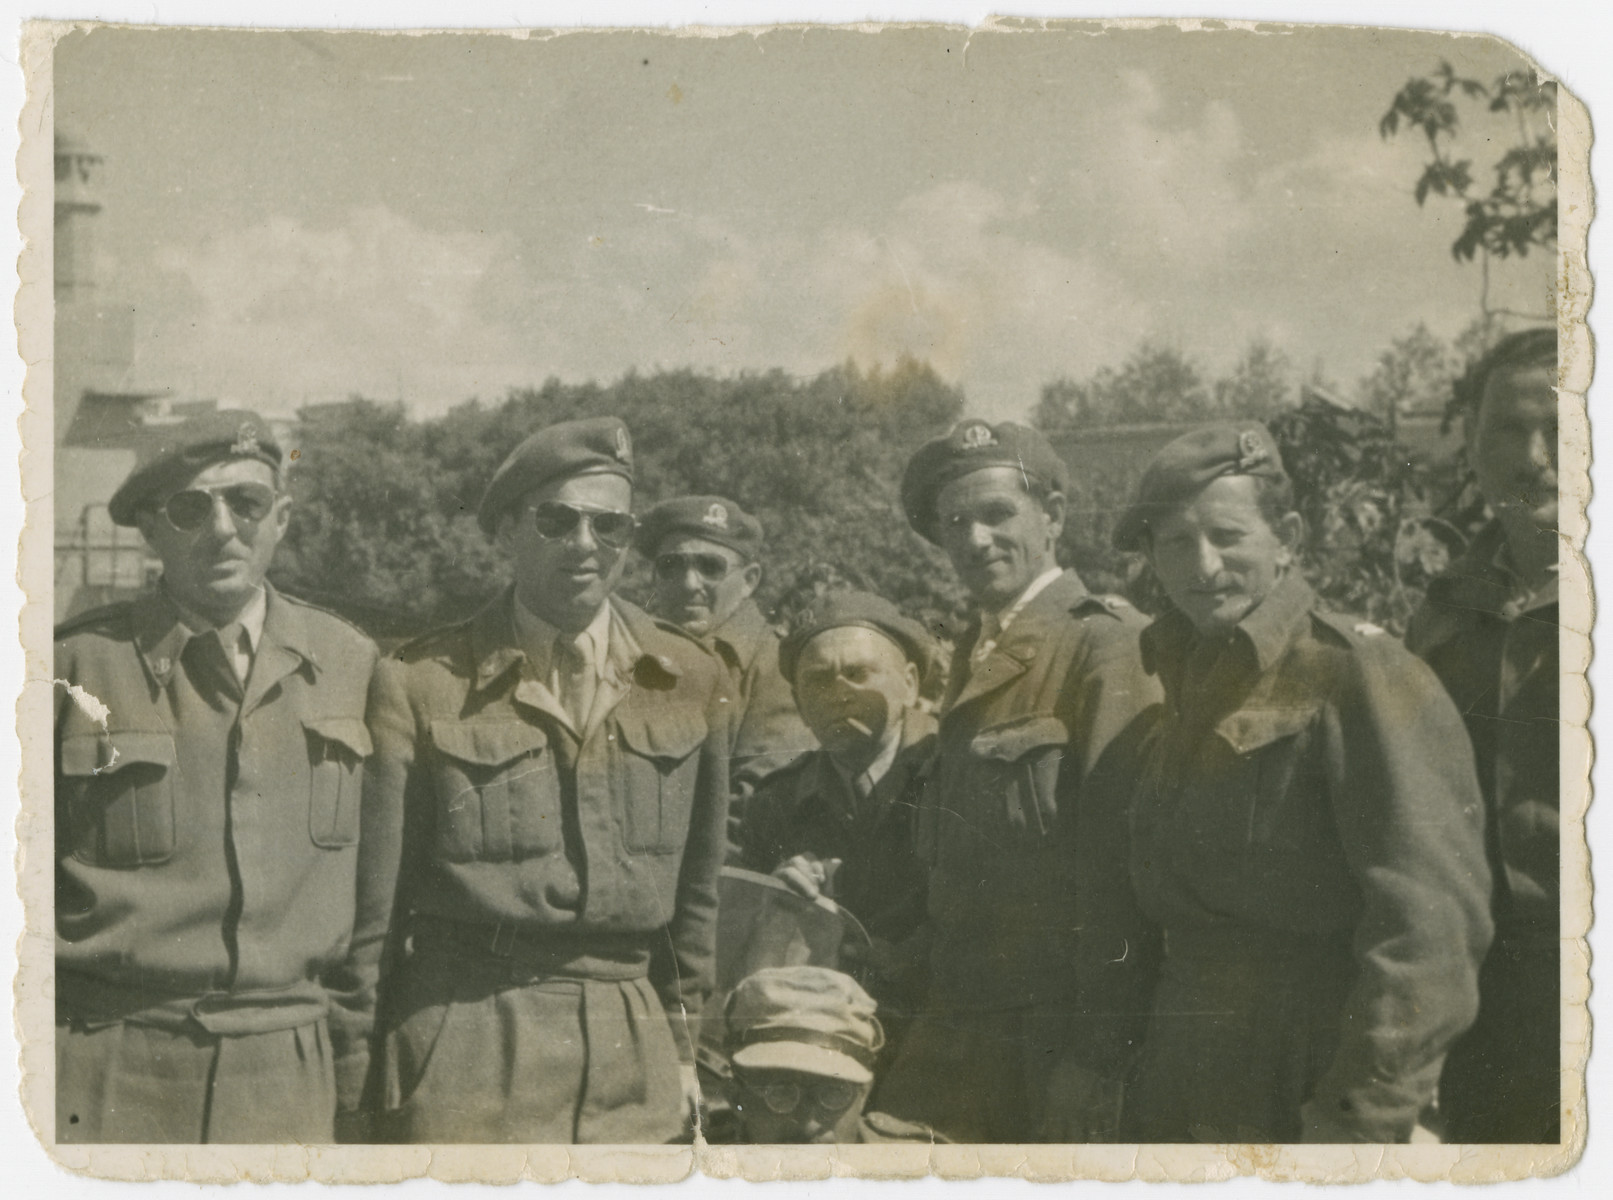 Group portrait of soldiers and officers of the Israeli Defence Forces.  Lt. Yehuda Bielski is standing third from the right.